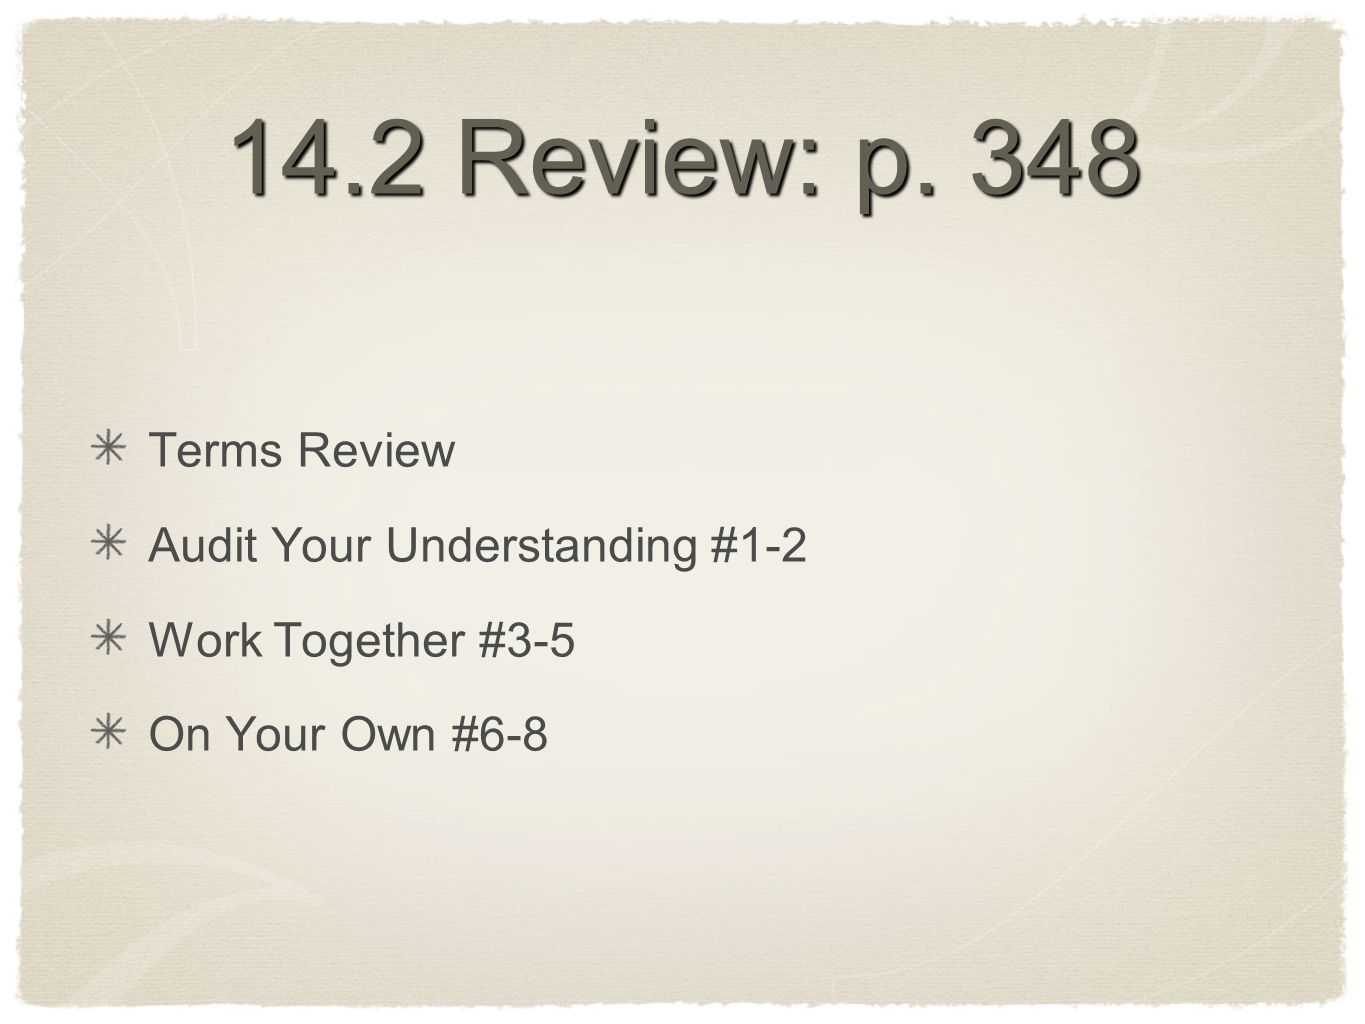 14.2 Review: p. 348 Terms Review Audit Your Understanding #1-2